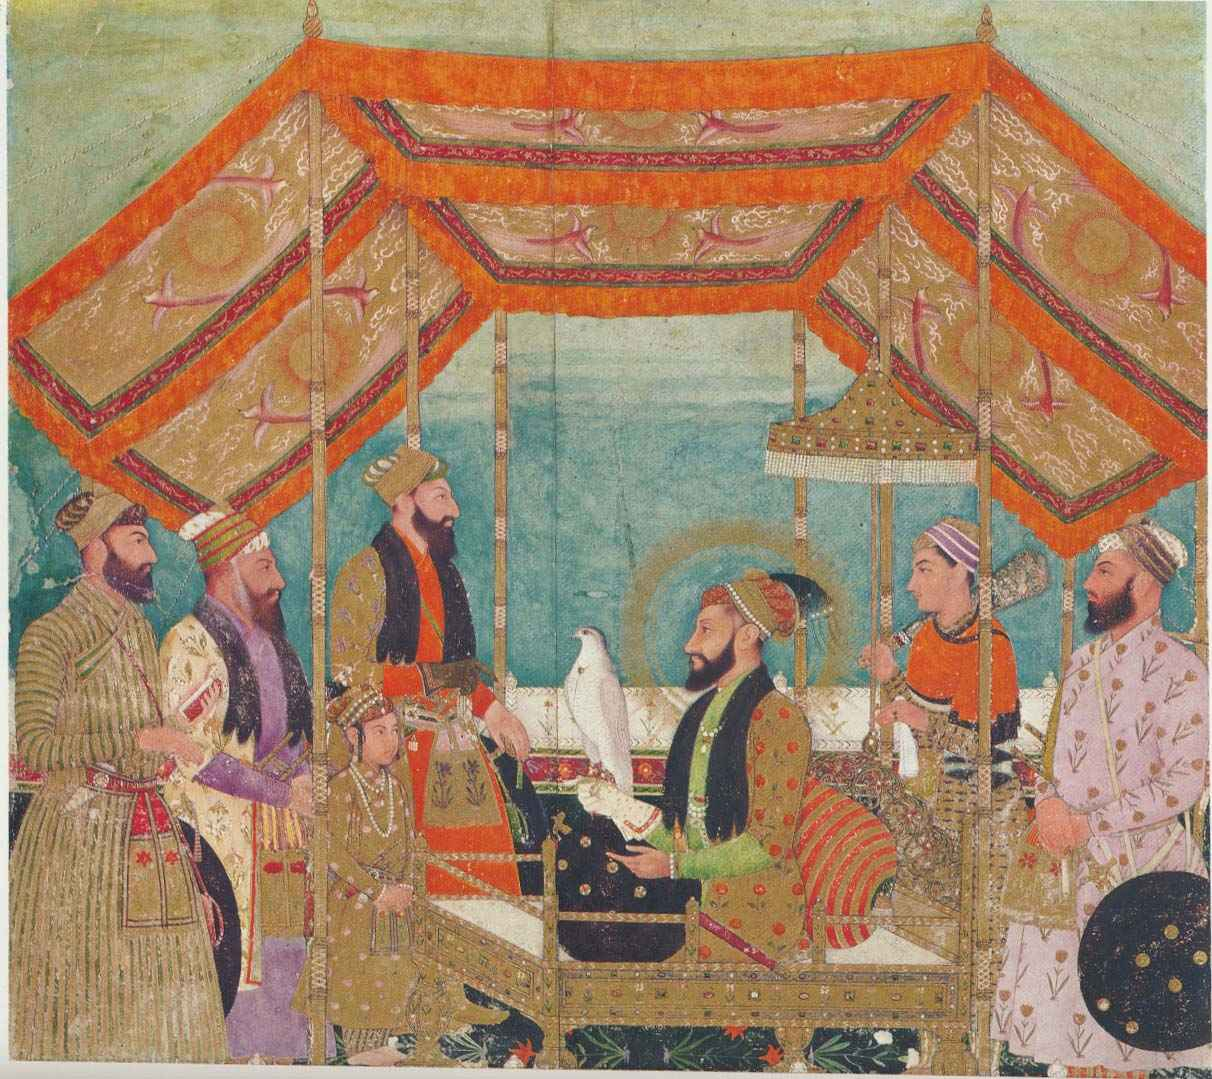 Mughals Are Out as Maharashtra History Textbooks Turn State-Centric